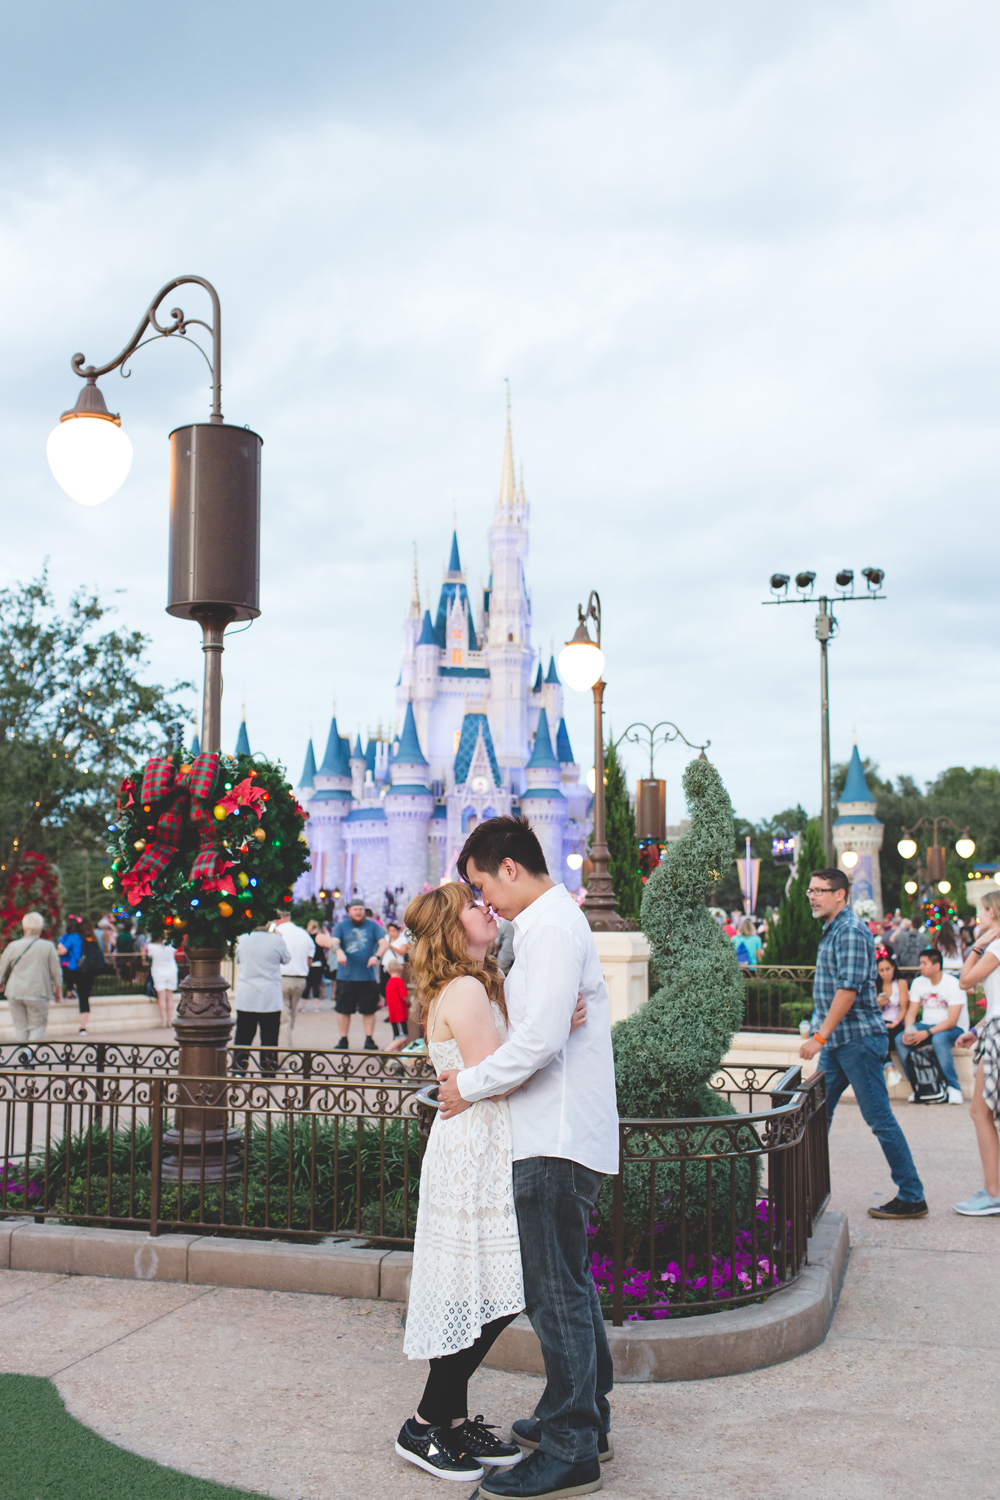 Disney Honeymoon session - Disney Engagement Photos - Disney Wedding Photographer - Destination Orlando Wedding Photographer - Jaime DiOrio (83).jpg